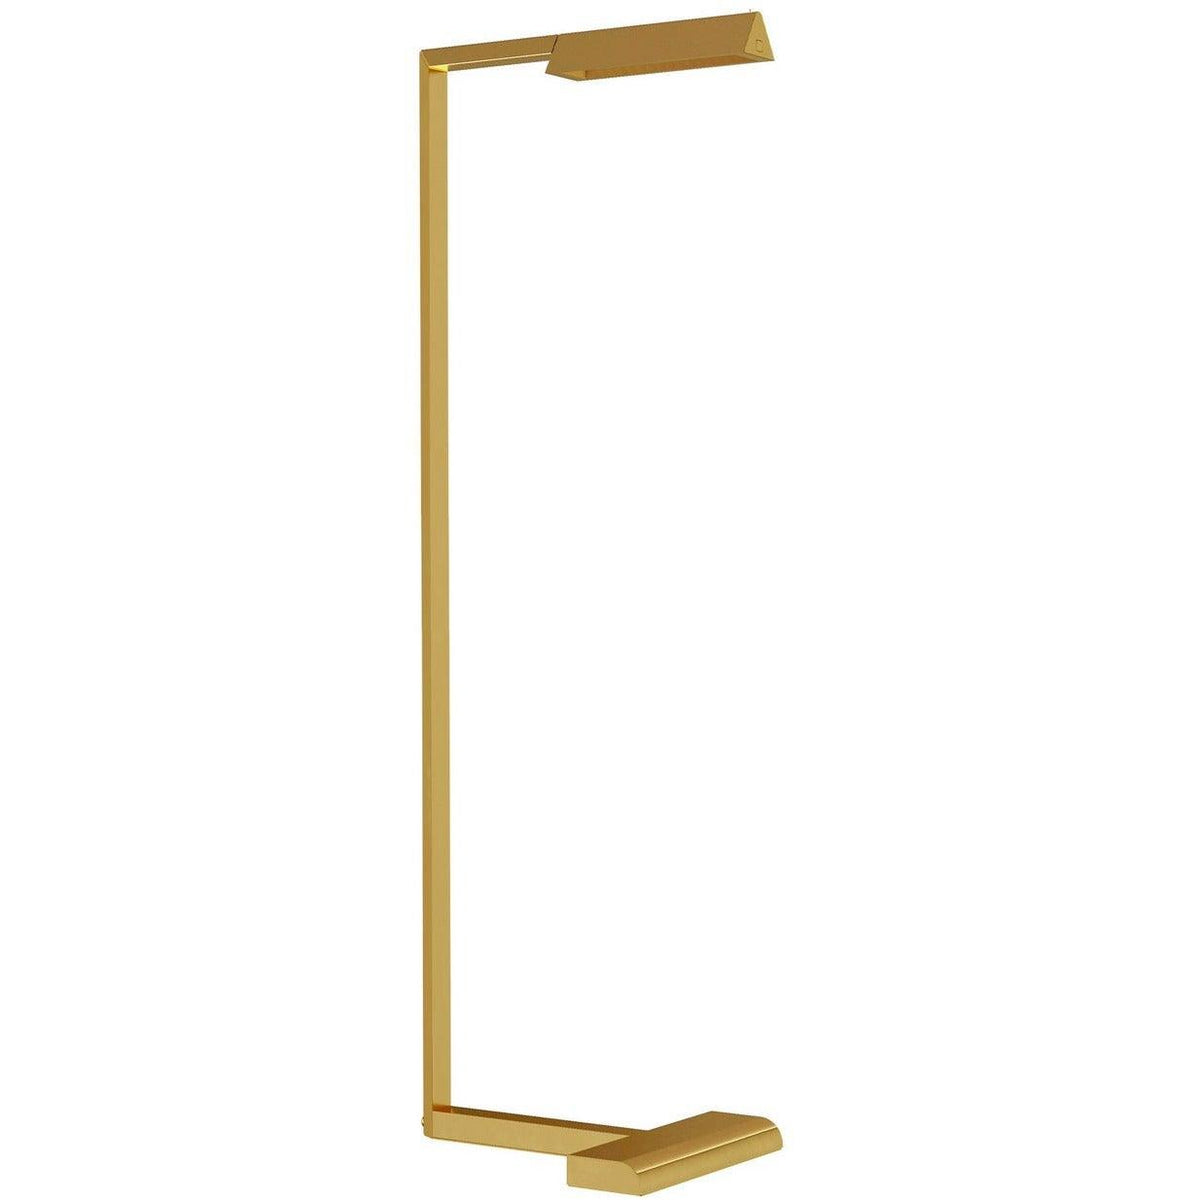 Tech Lighting - 700PRTDES38NB-LED927 - LED Floor Lamp - Dessau - Natural Brass